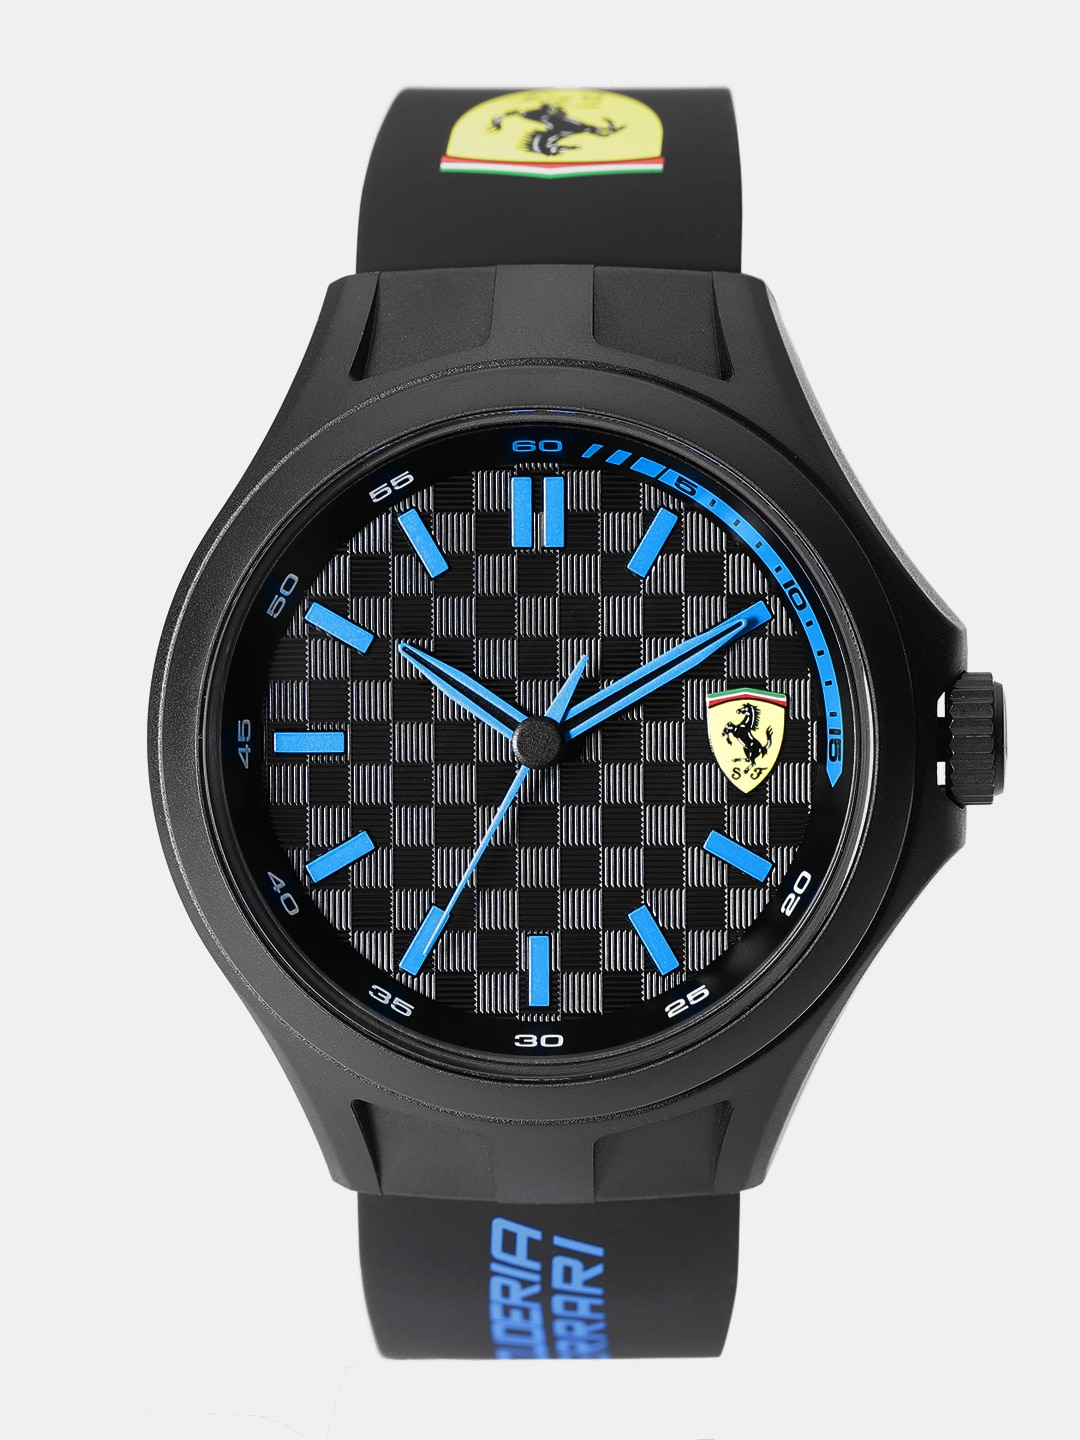 Paul Philippe Watch Watches Tops - Buy Paul Philippe Watch Watches Tops online  in India 09004dd616a08